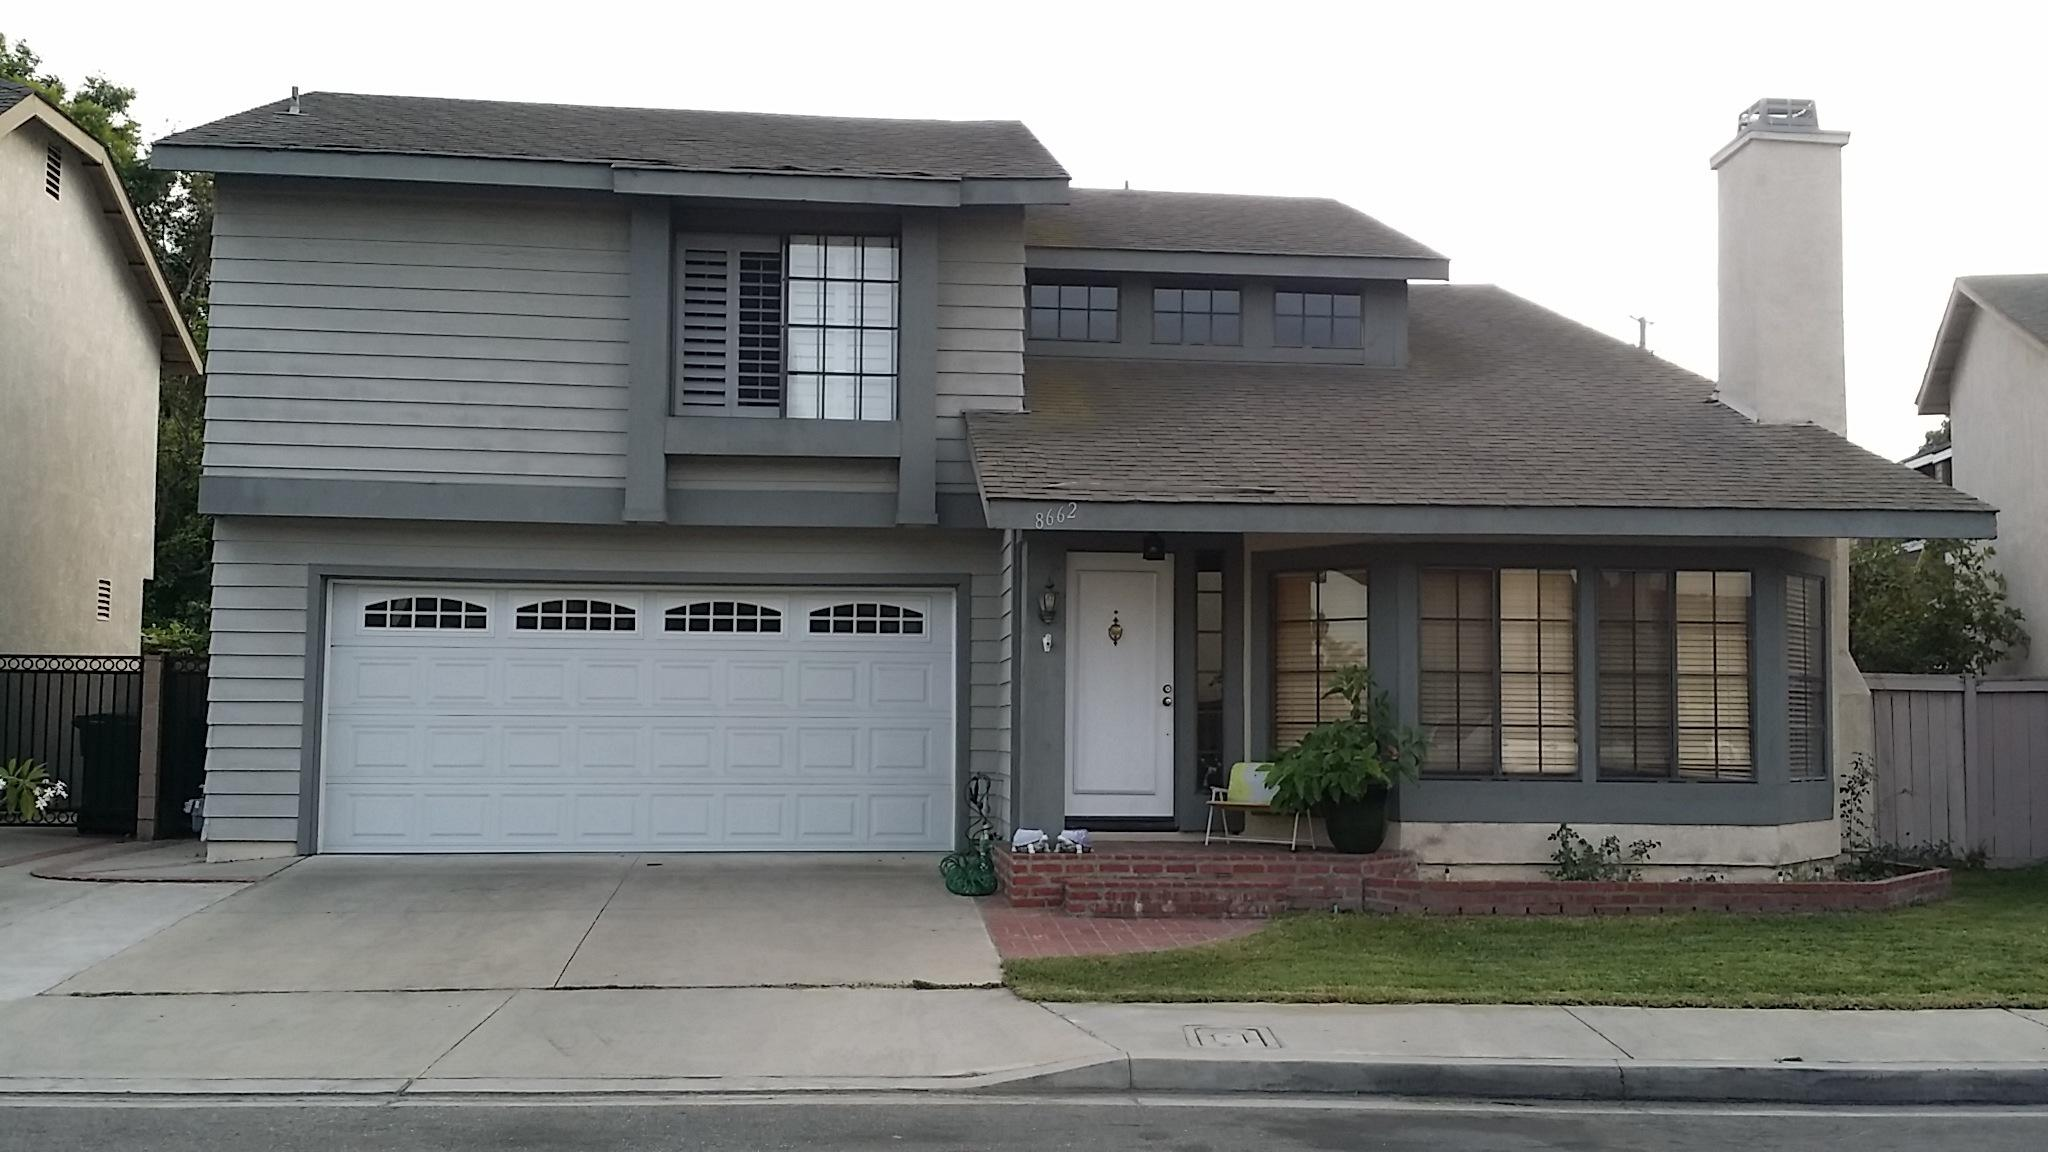 house for rent in garden grove ca. 8662 pizarro ave house for rent in garden grove ca n